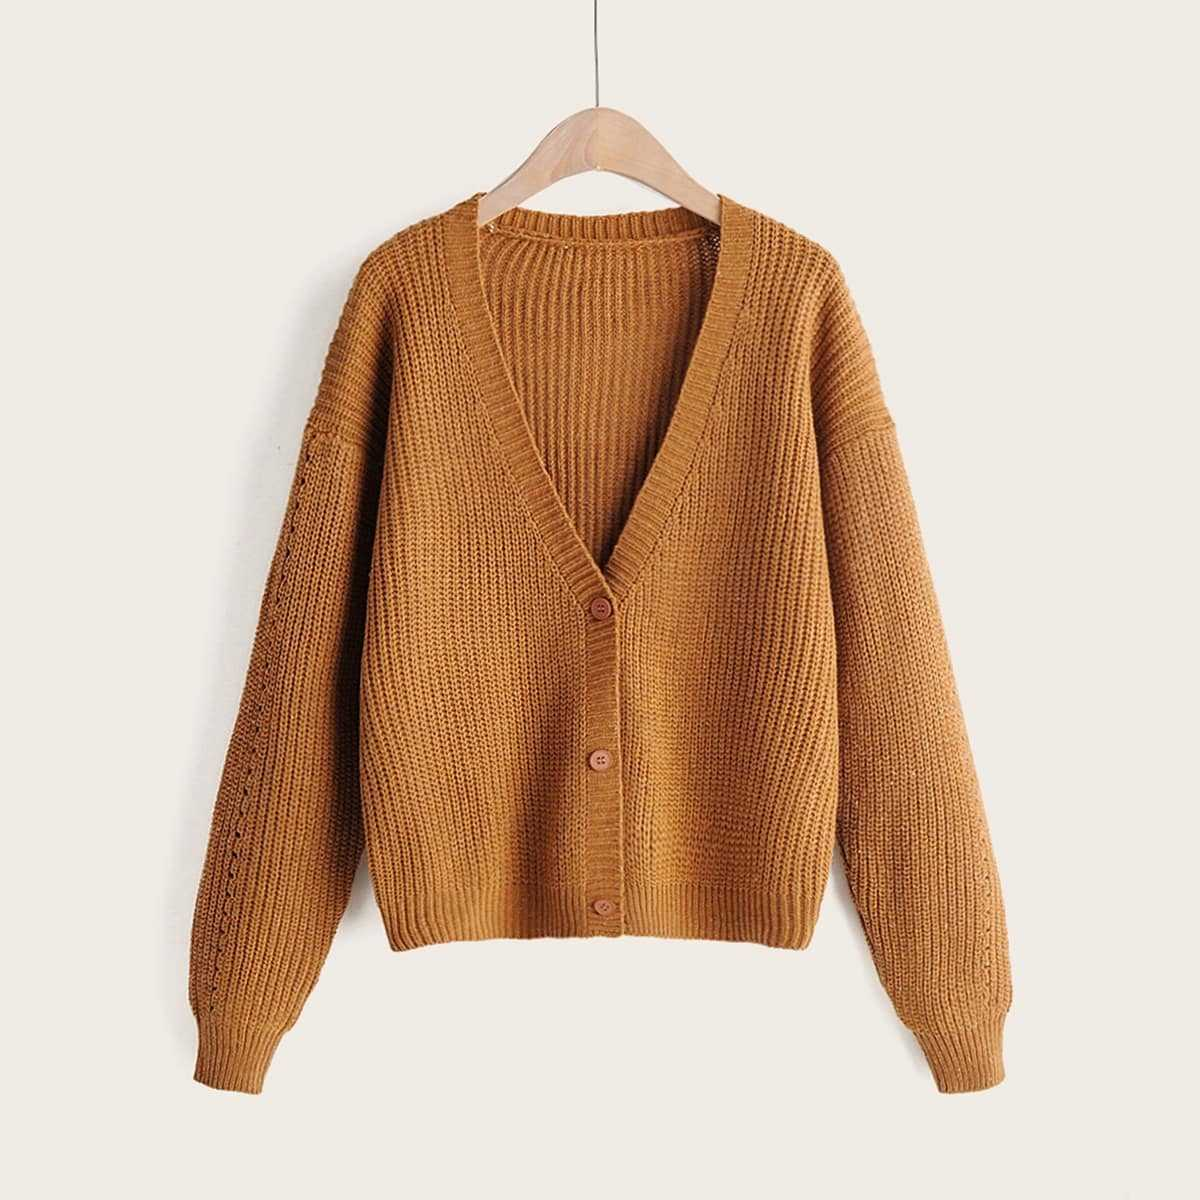 Drop Shoulder Button Through Cardigan in Brown by ROMWE on GOOFASH